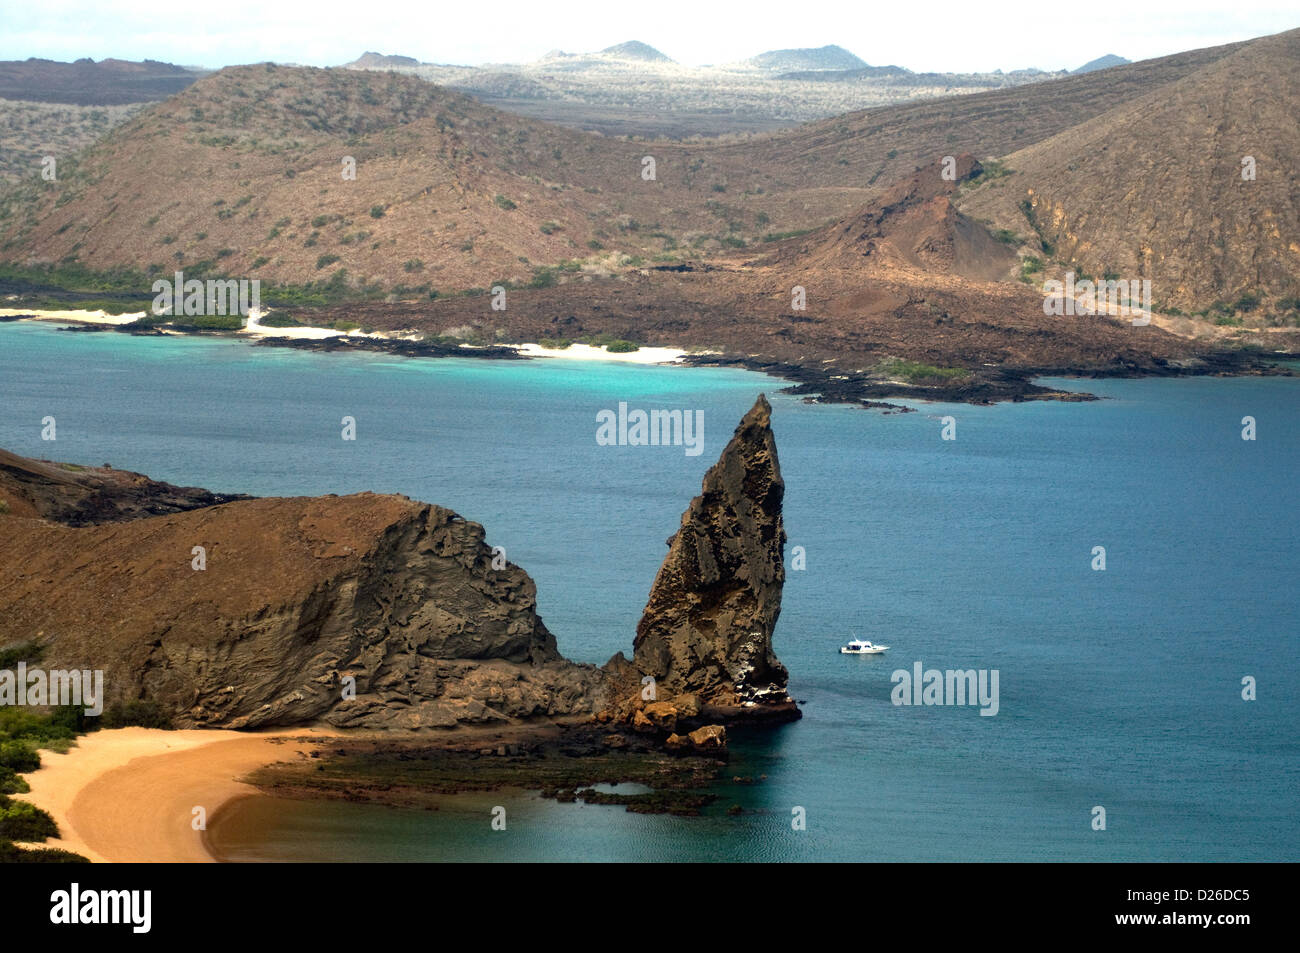 Bartolomé, off Santiago island in the Galapagos, boasts grand views of sea, beach, landscapes, even the striking - Stock Image